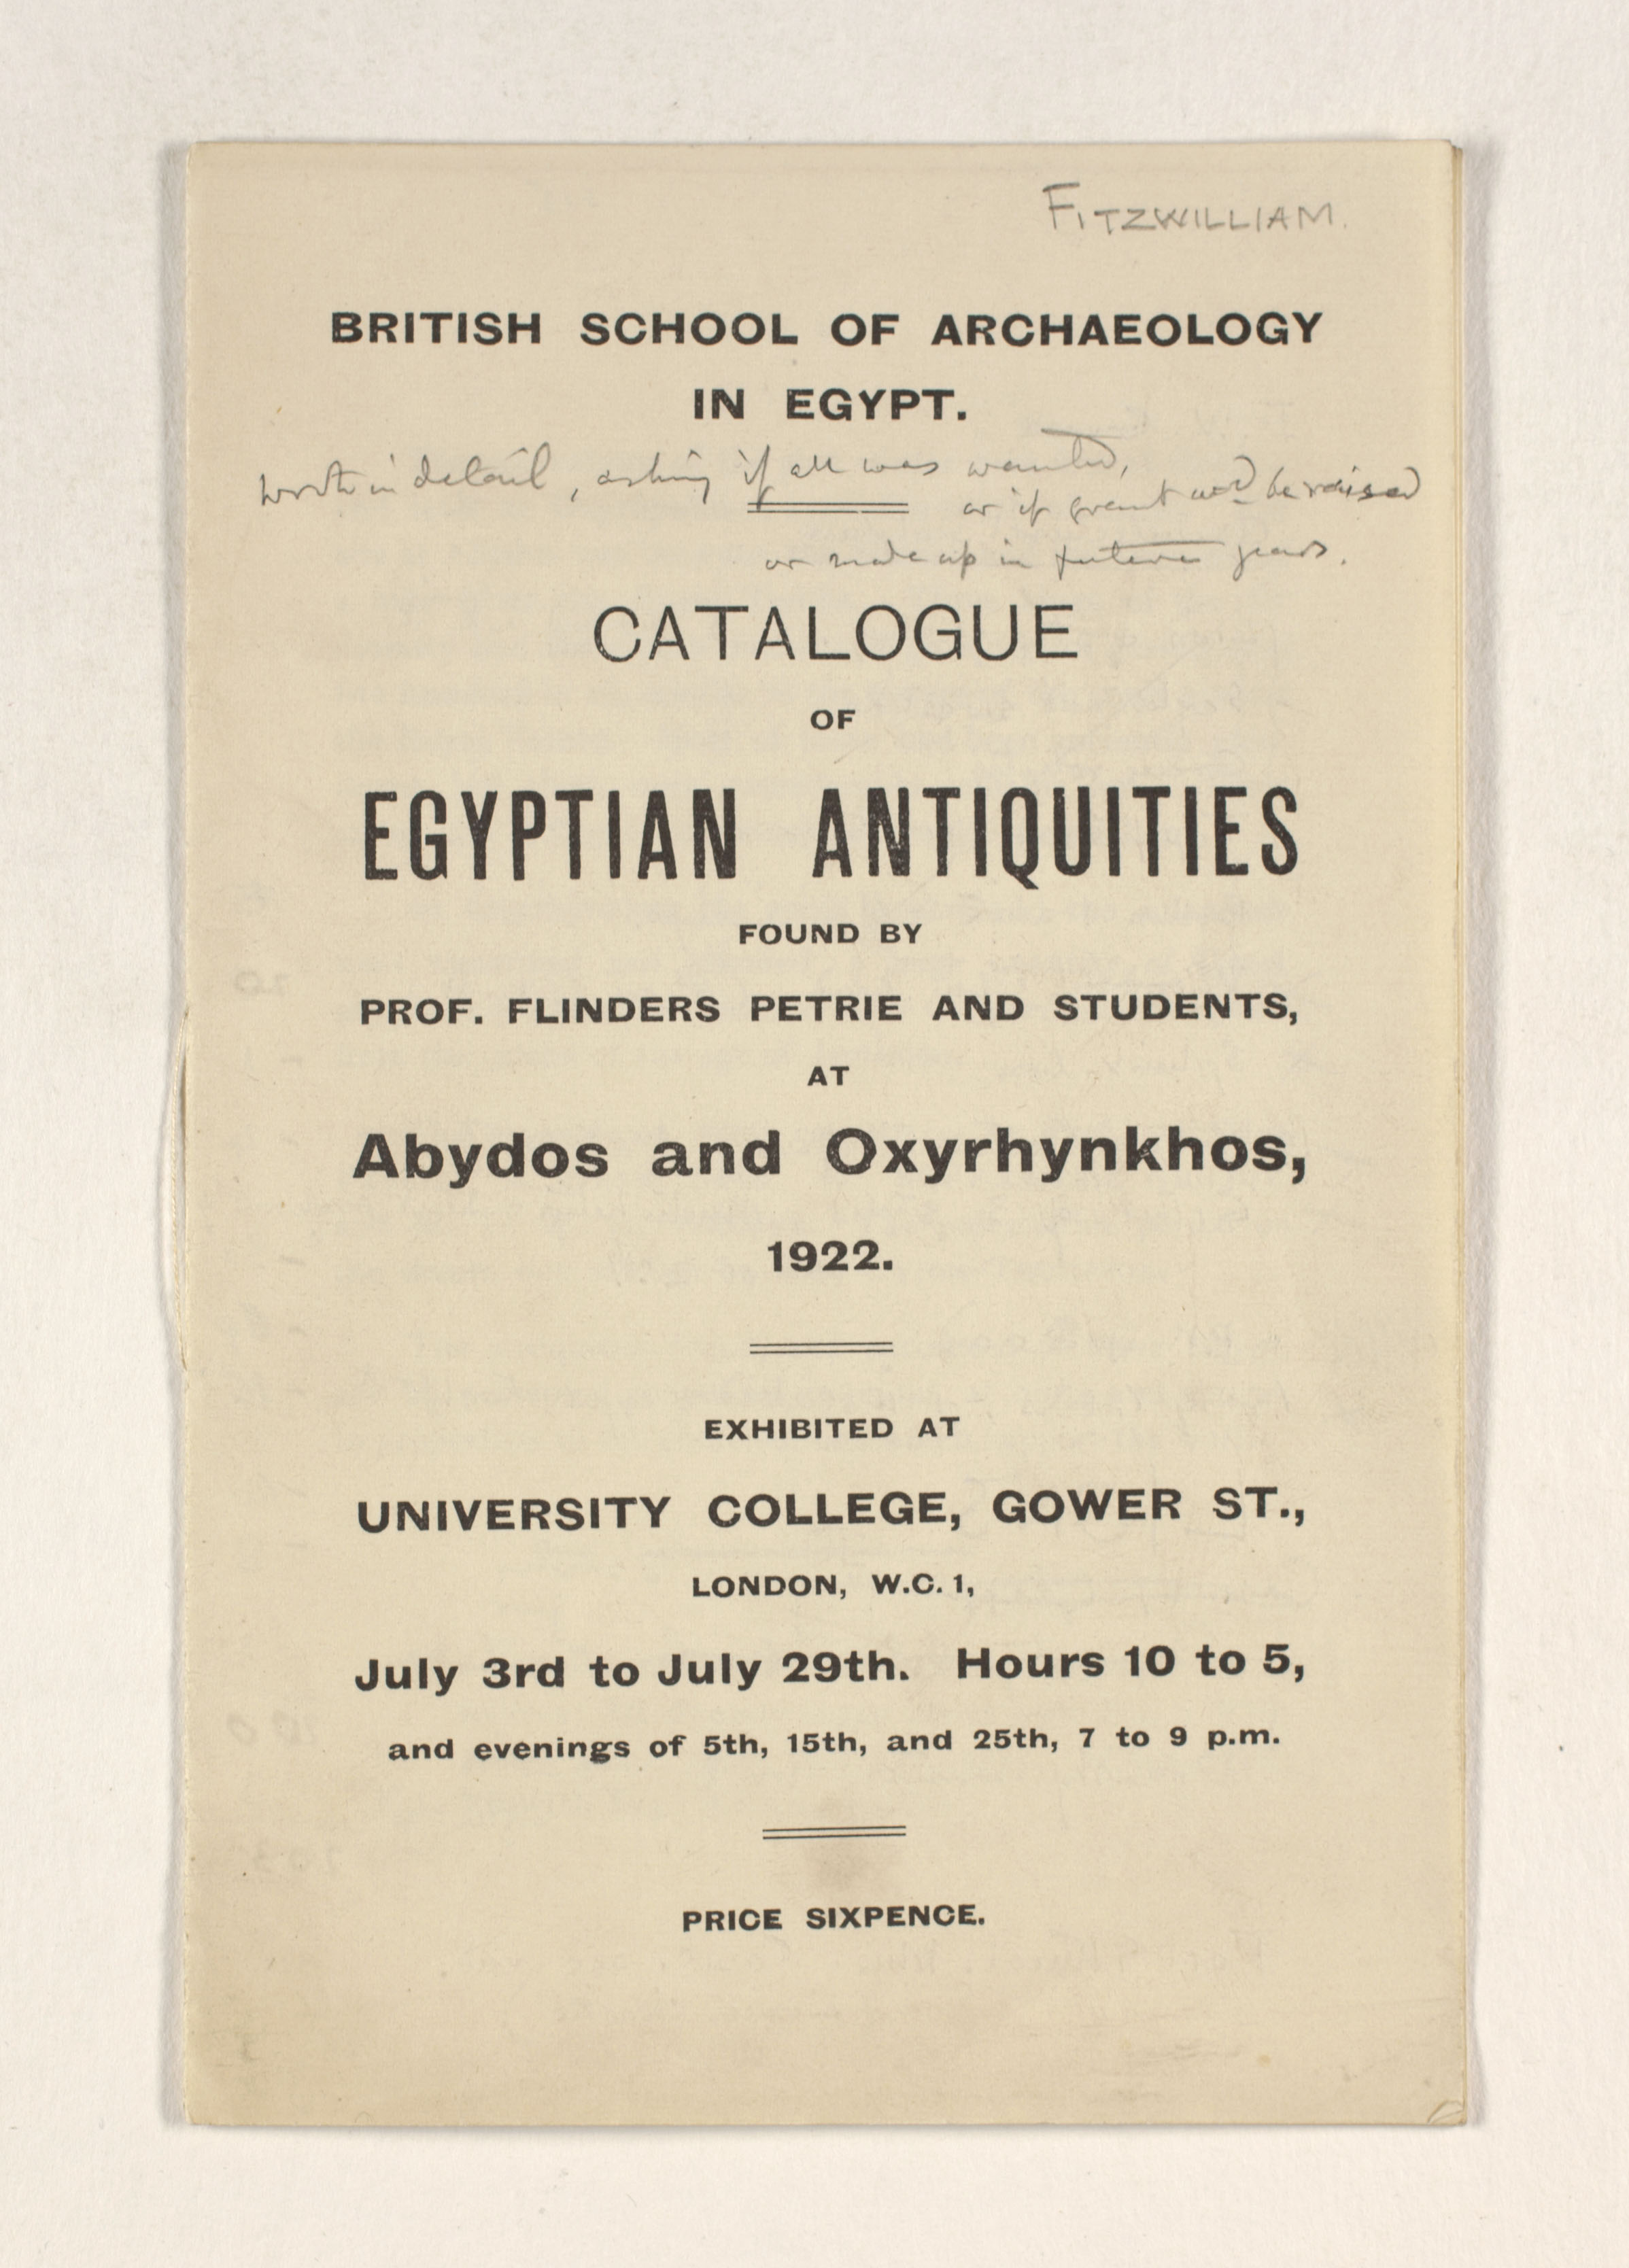 1921-22 Abydos, Oxyrhynchus Exhibition catalogue PMA/WFP1/D/25/19.1